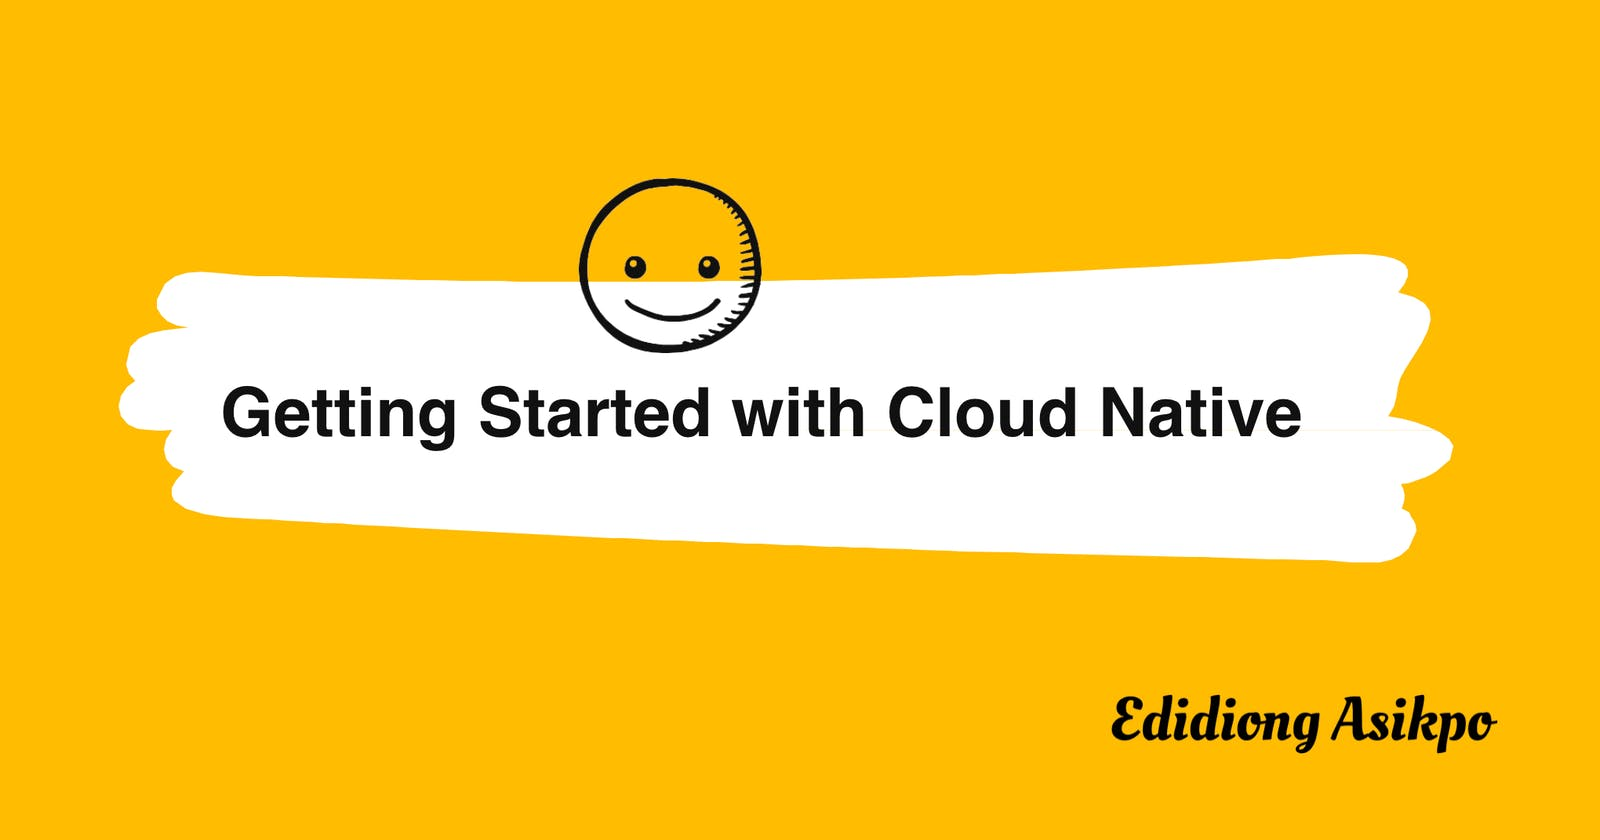 Getting Started with Cloud Native